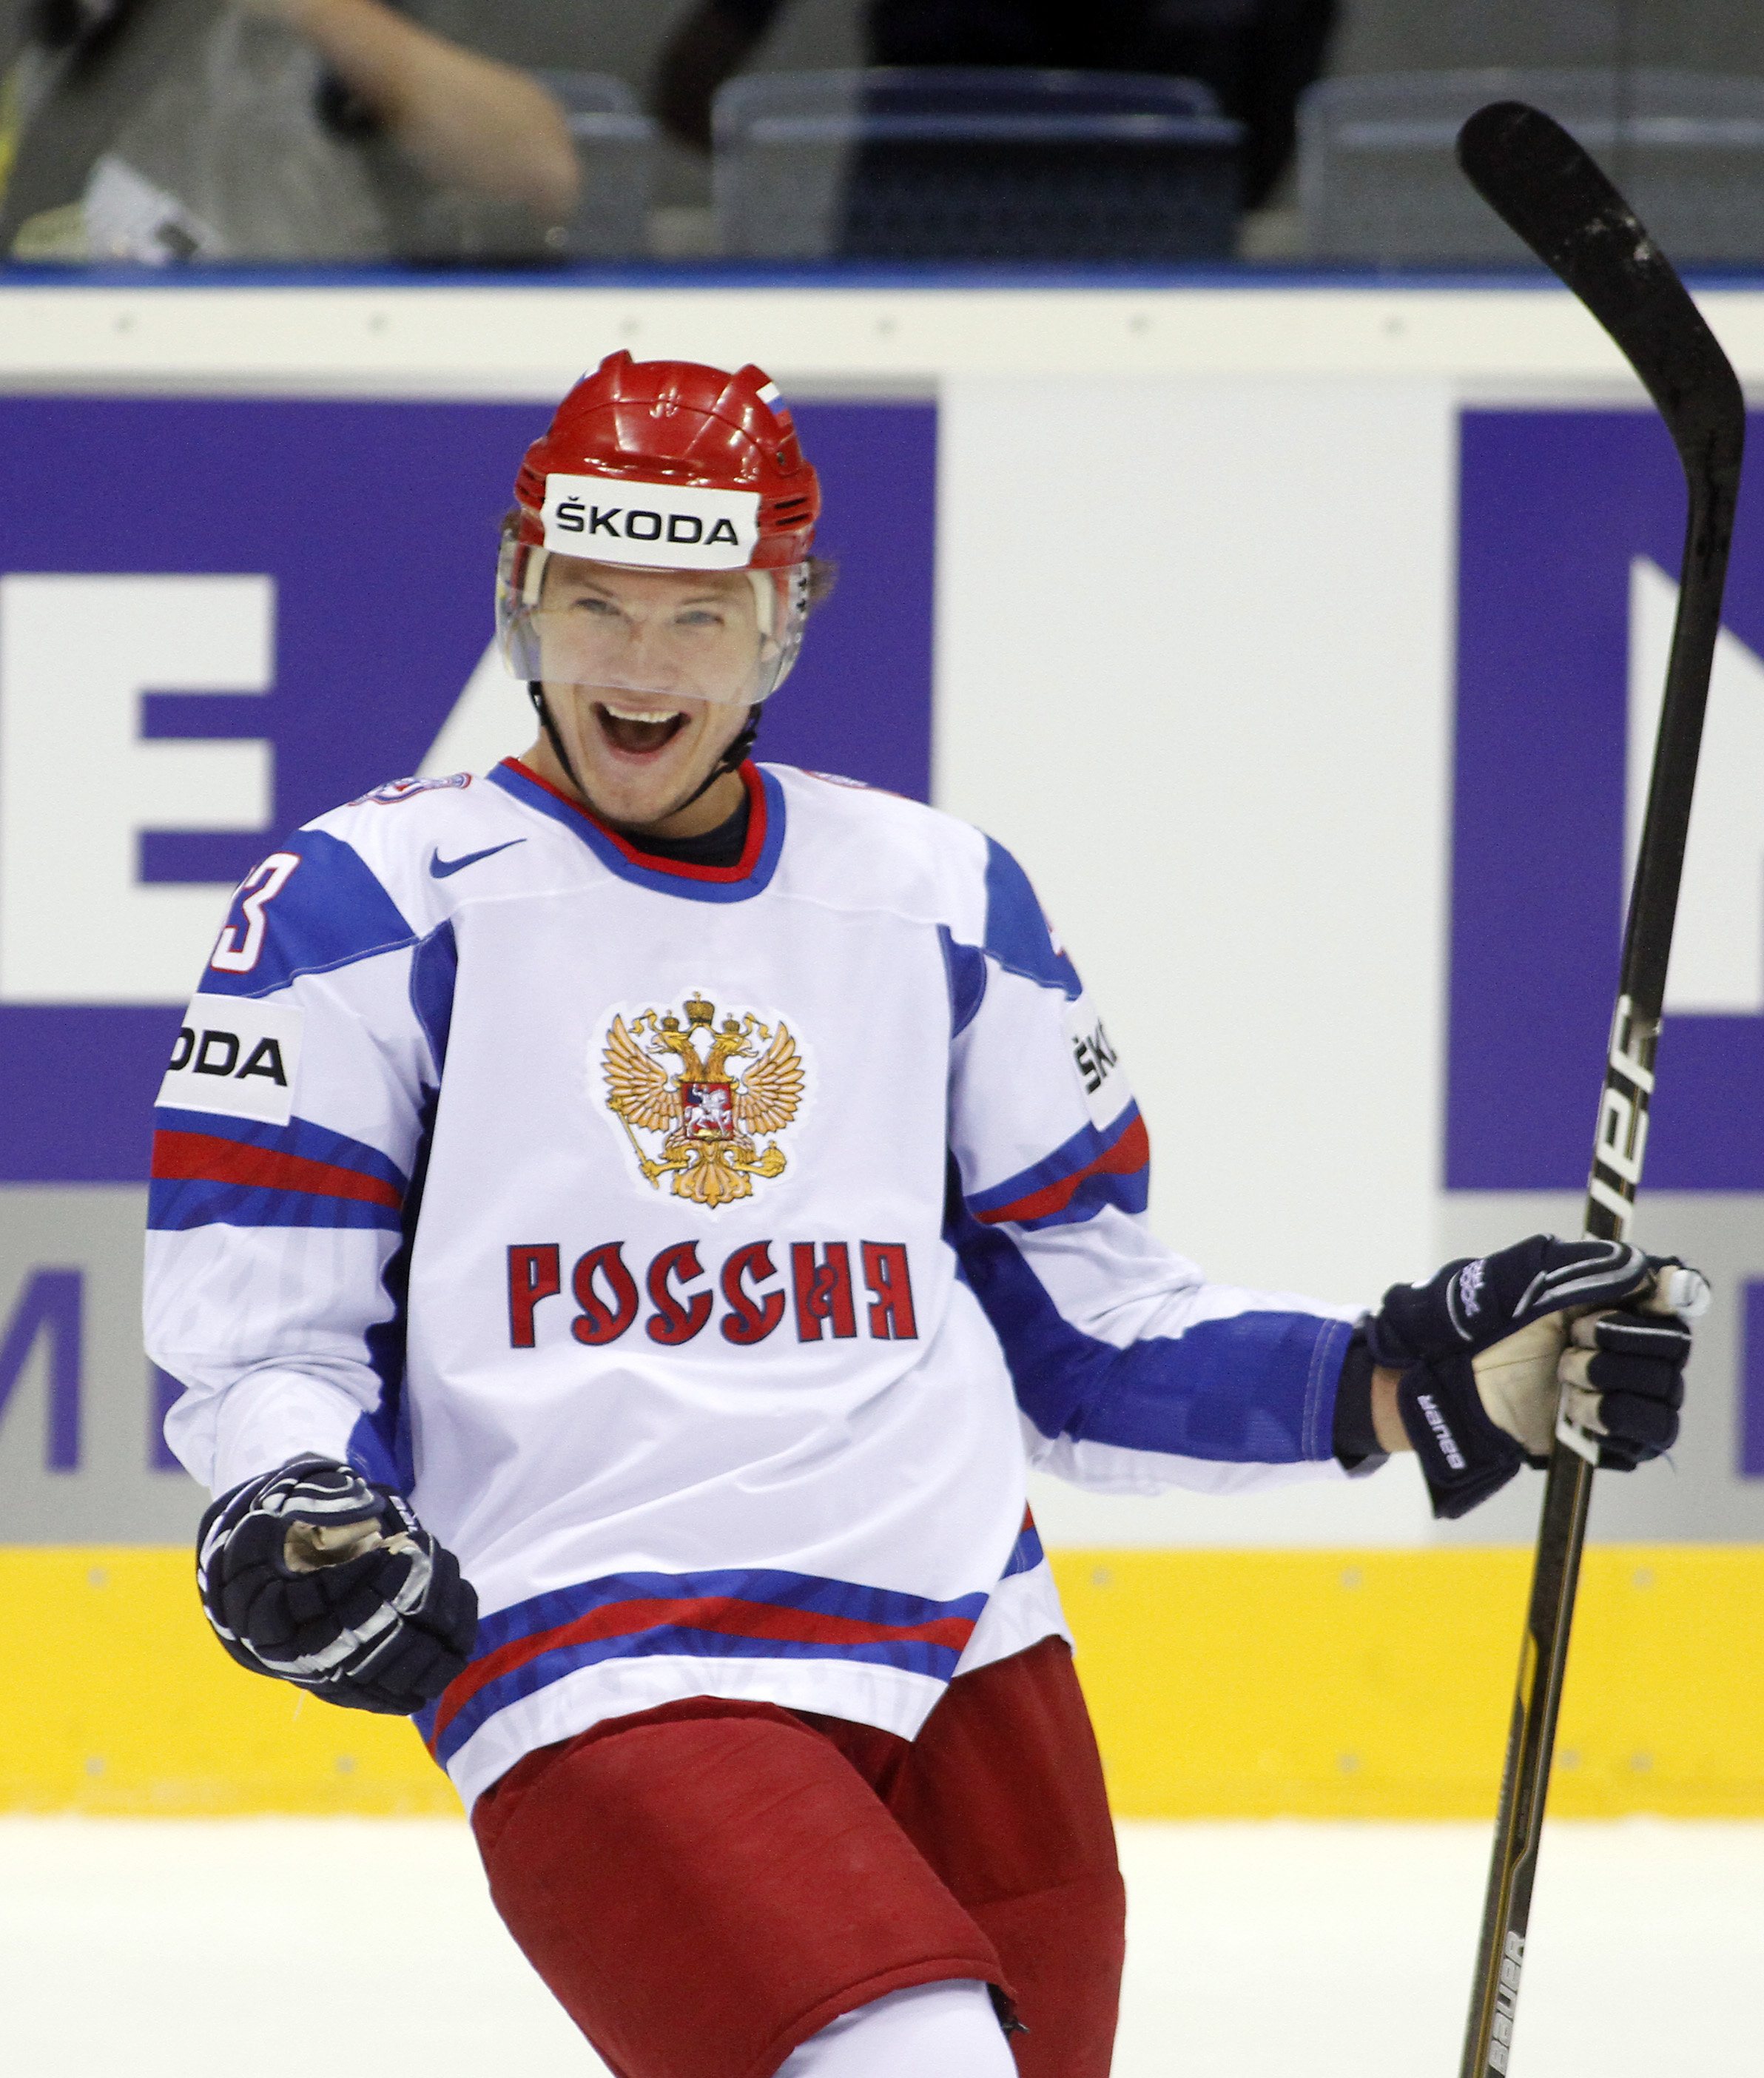 Russia's Dmitri Kulikov reacts after scoring aginst Czech Republic during the bronze medal  match of the World Hockey Championships in Bratislava, Slovakia, on Sunday, May 15,  2011. (AP Photo/Ronald Zak)